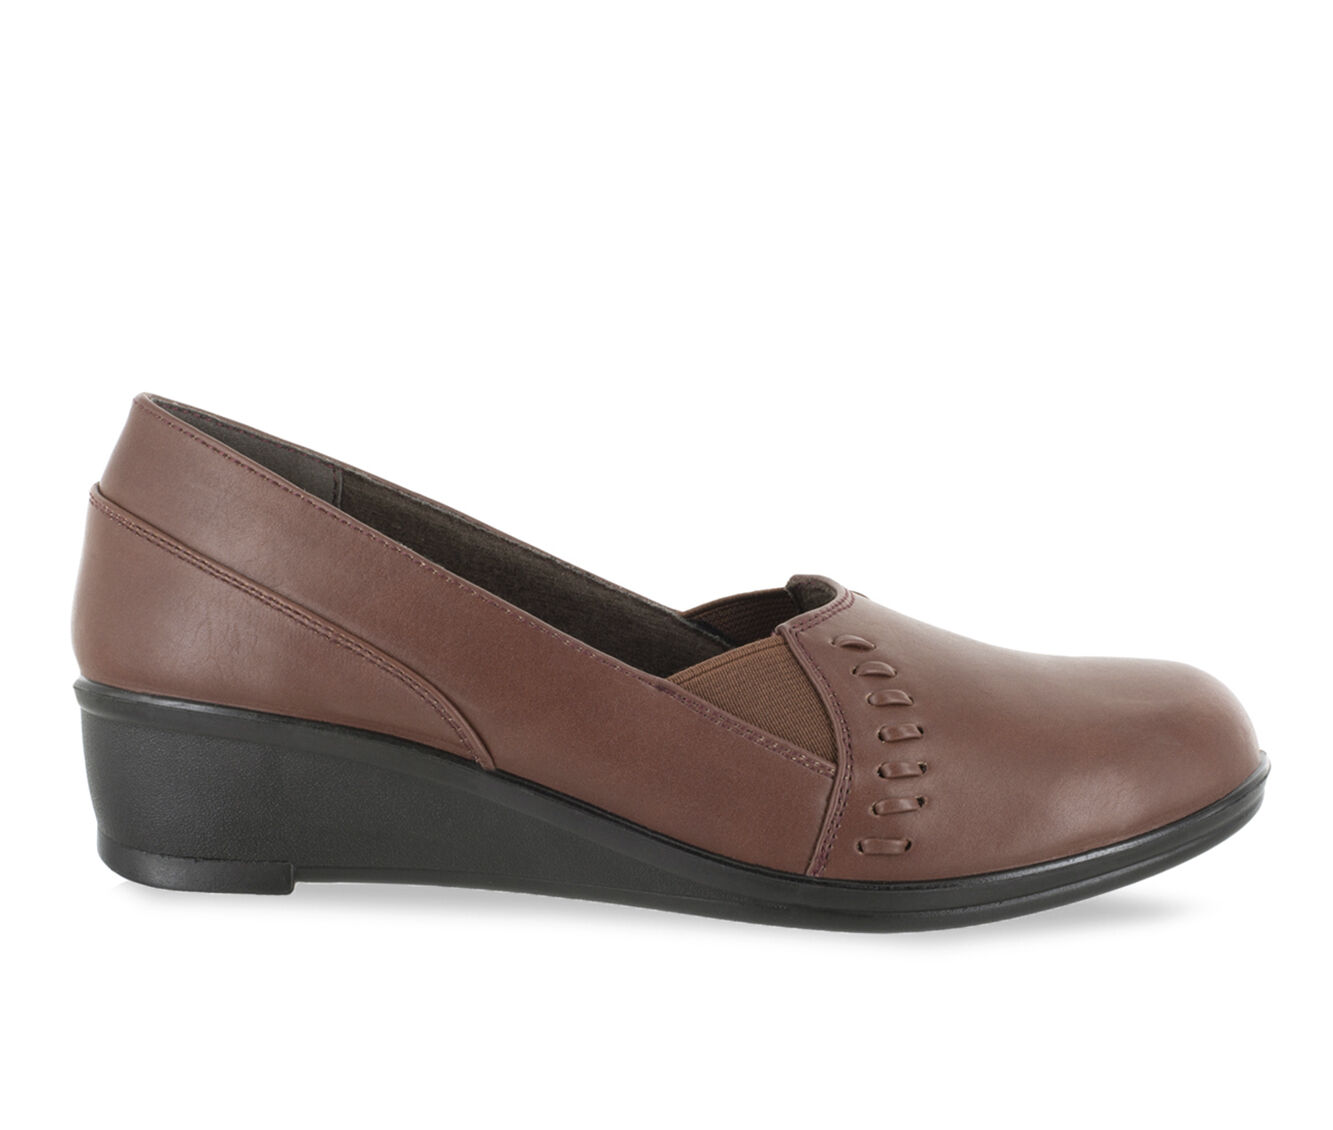 Buy Perfect Women's Easy Street Story Shoes Tan